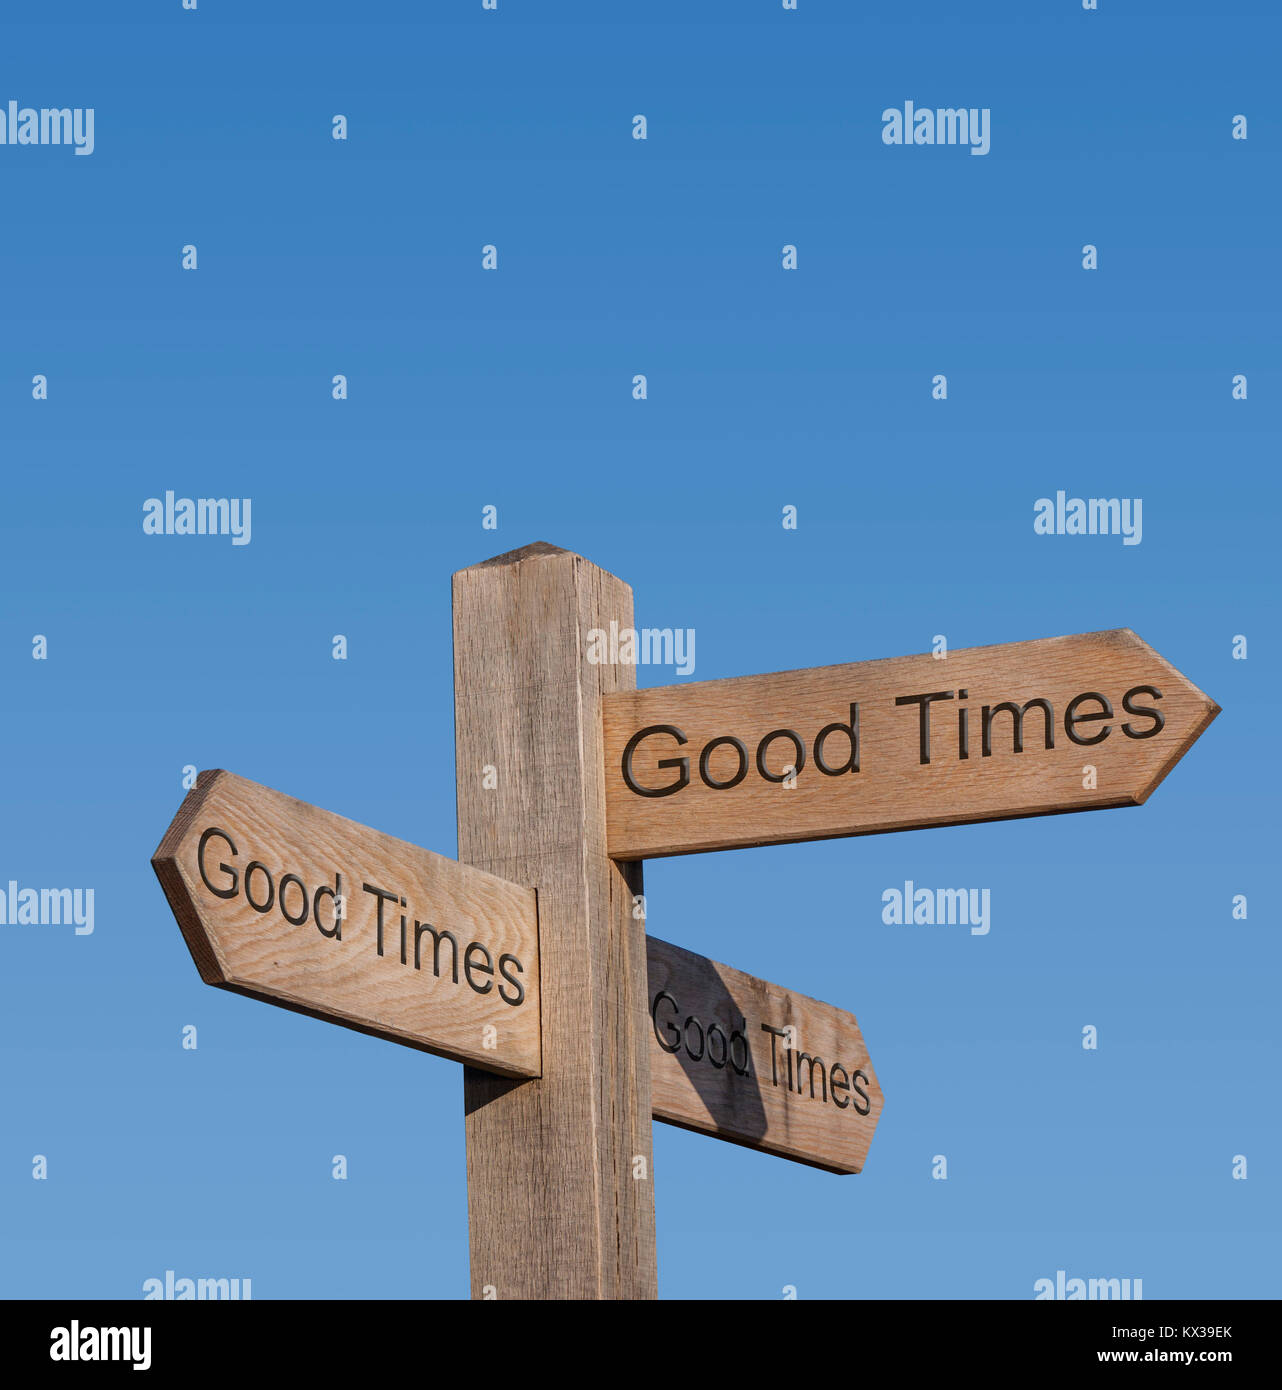 Signpost directions showing Good Times in every direction. Good times all the way. - Stock Image